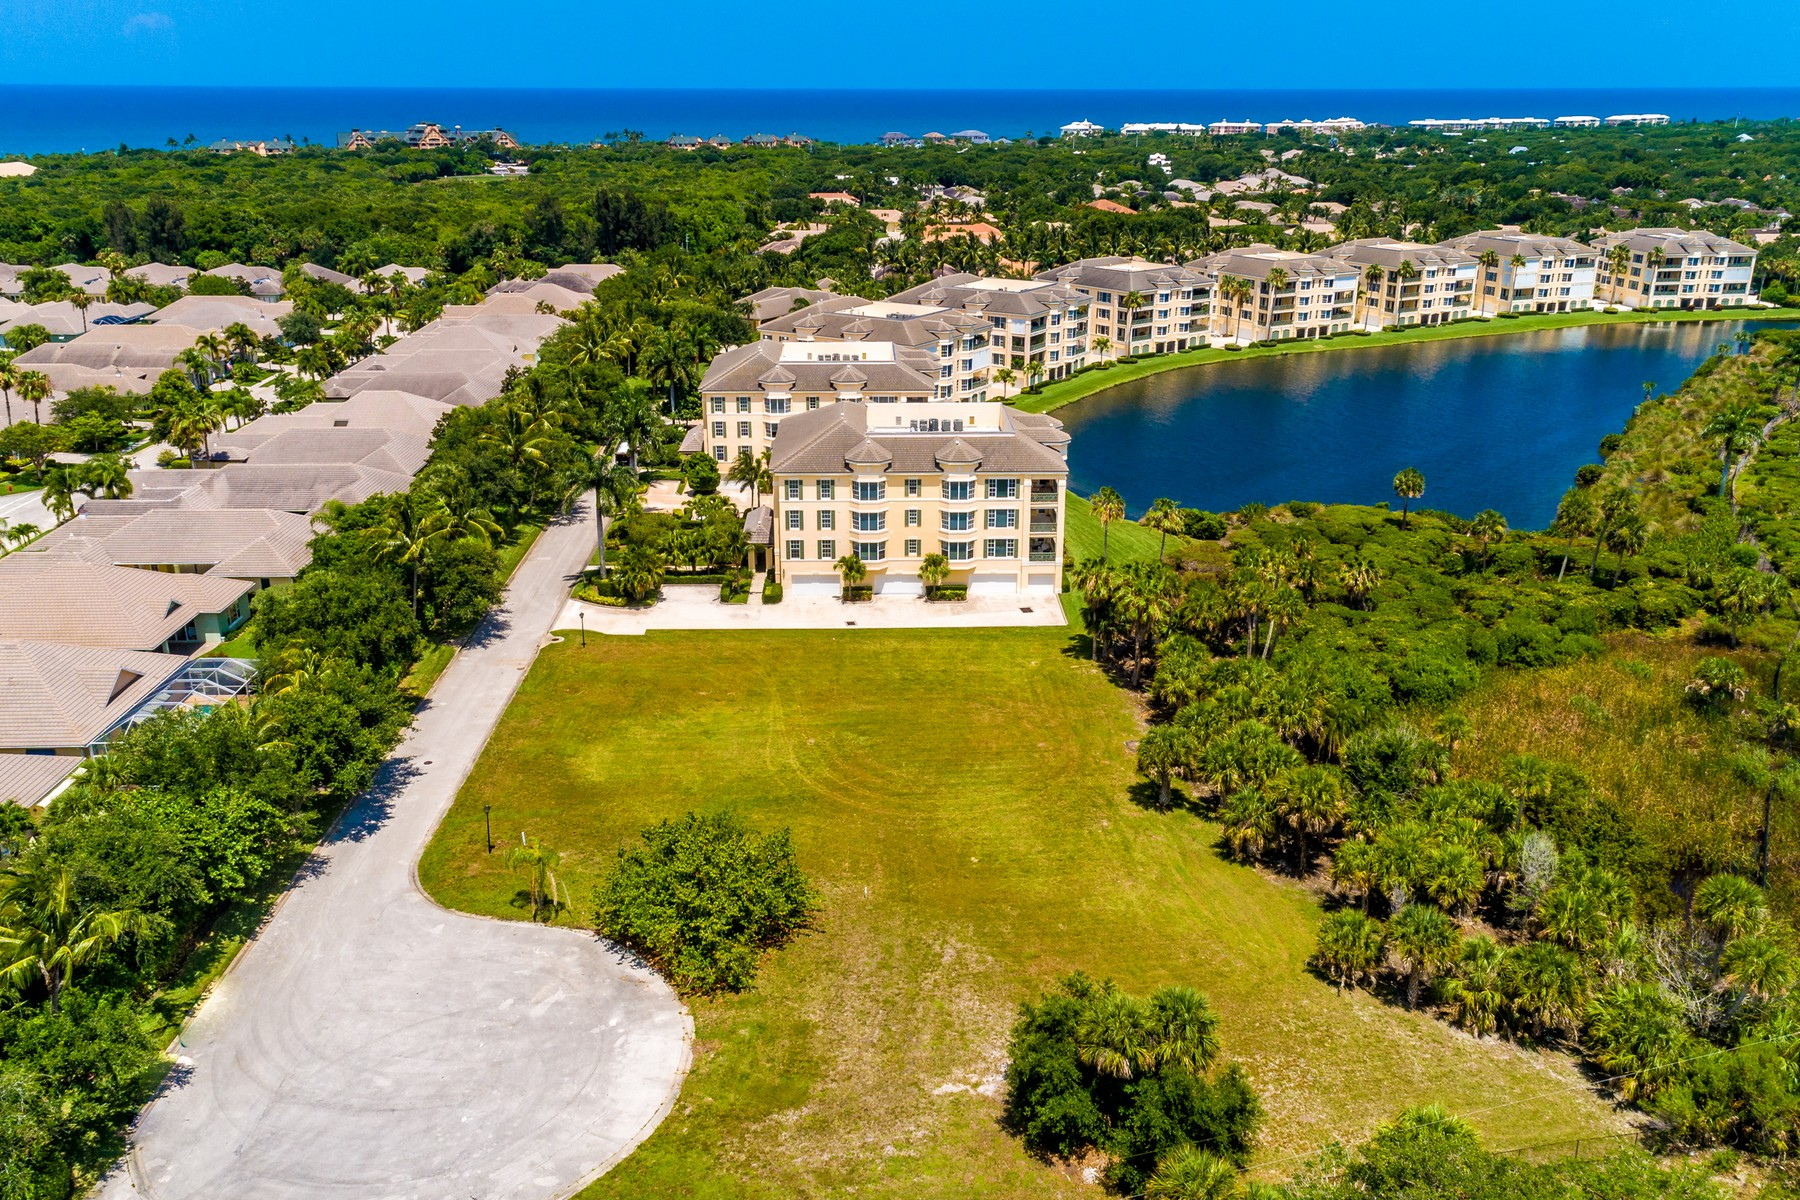 Property para Venda às Spectacular Direct Riverfront Condo Sites 0 Somerset Bay Lane Vero Beach, Florida 32963 Estados Unidos